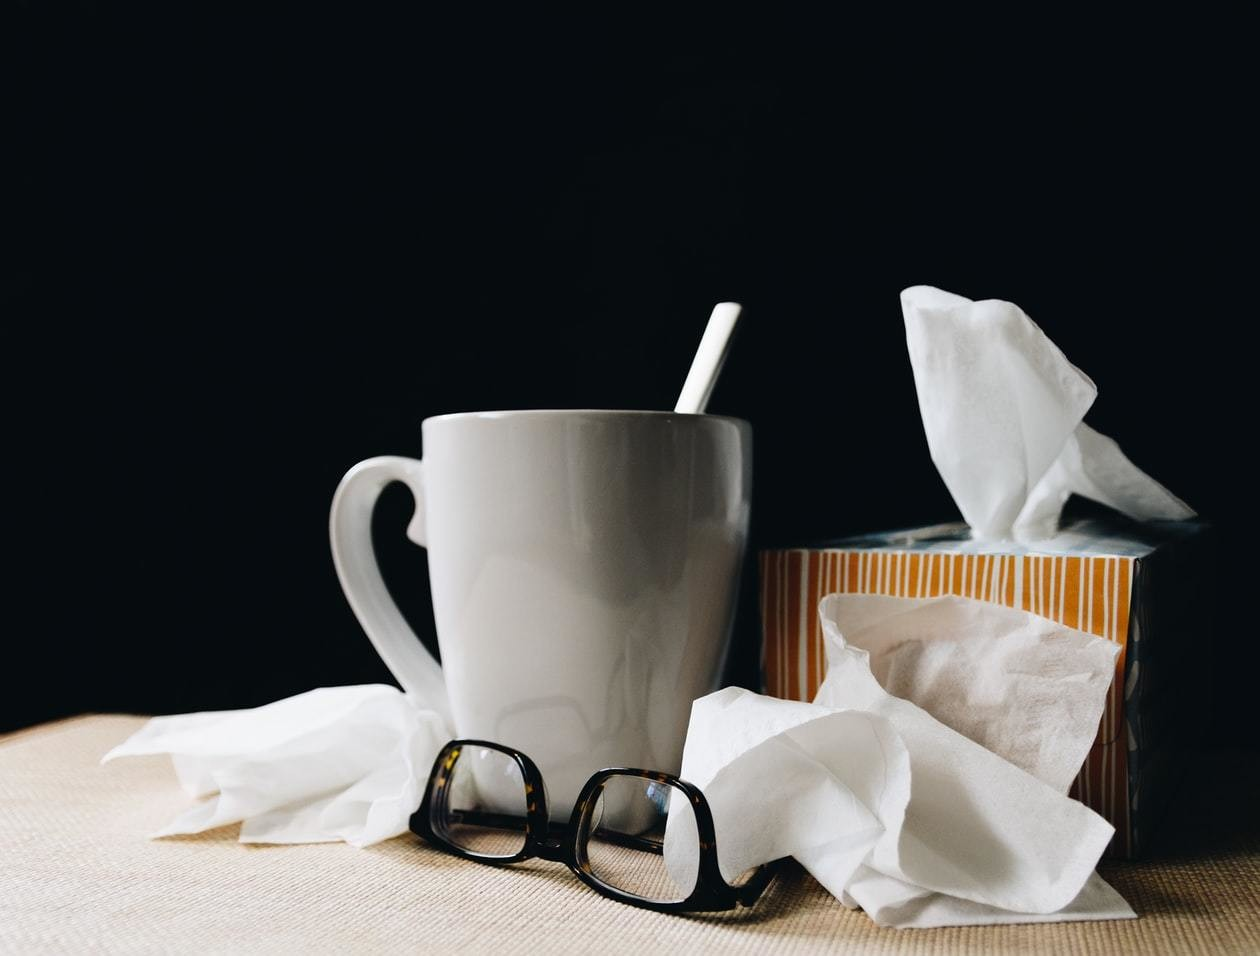 Tissues, glasses and a coffee cup are seen on a table.